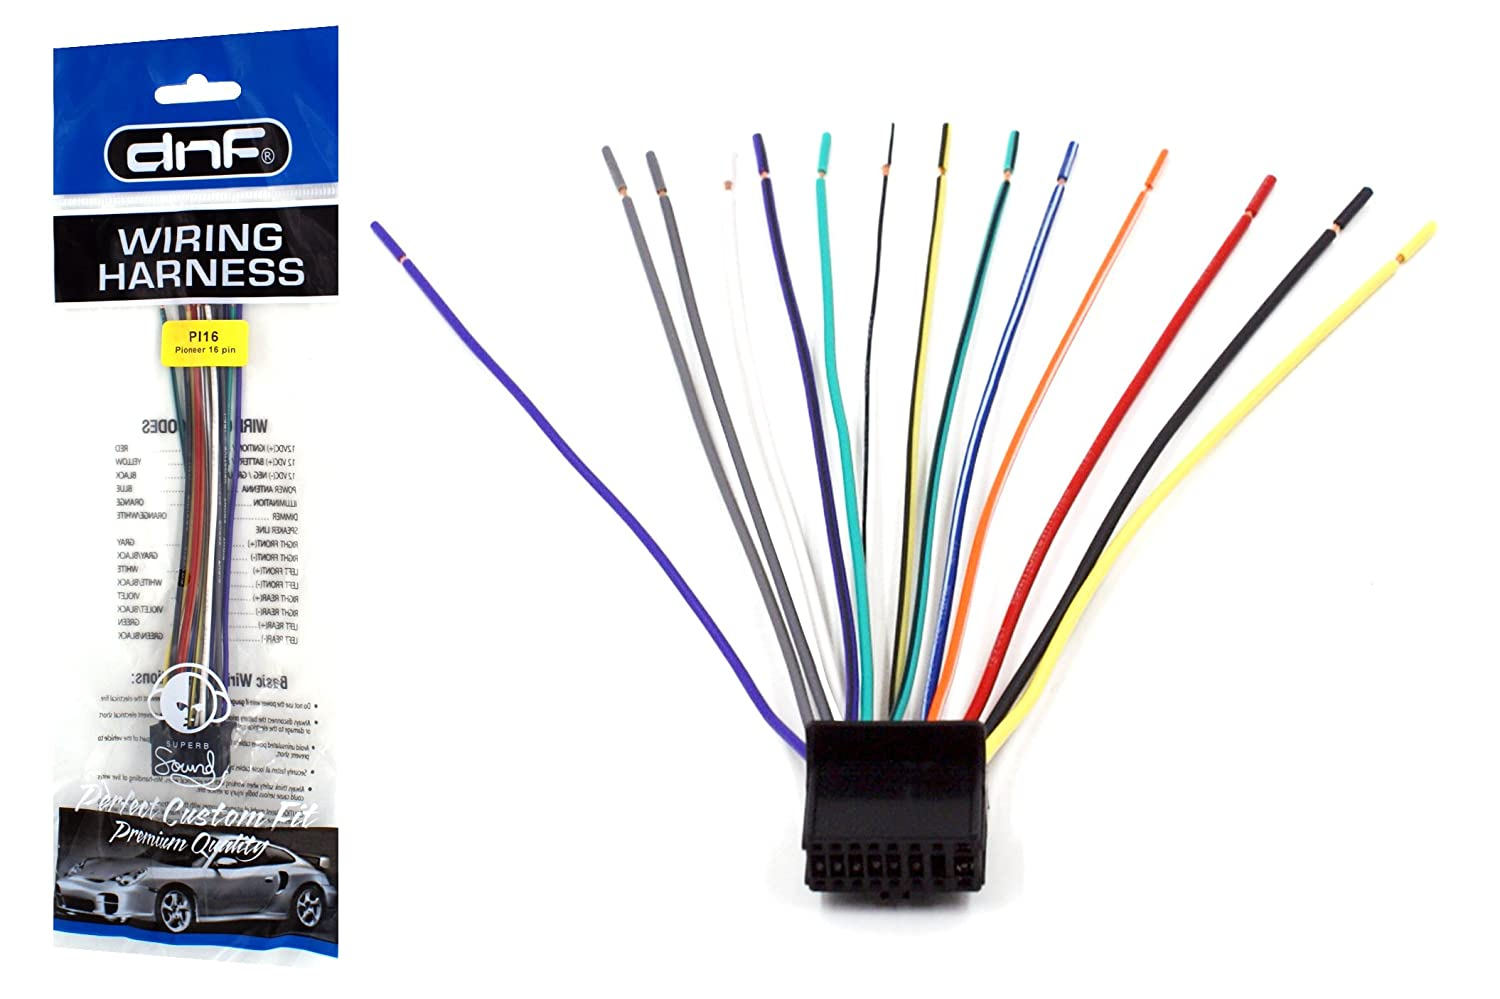 71A5xHv4deL._SL1500_ amazon com dnf pioneer wiring harness 0307 deh p4000ub deh p400ub pioneer deh-p7600mp wiring diagram at creativeand.co